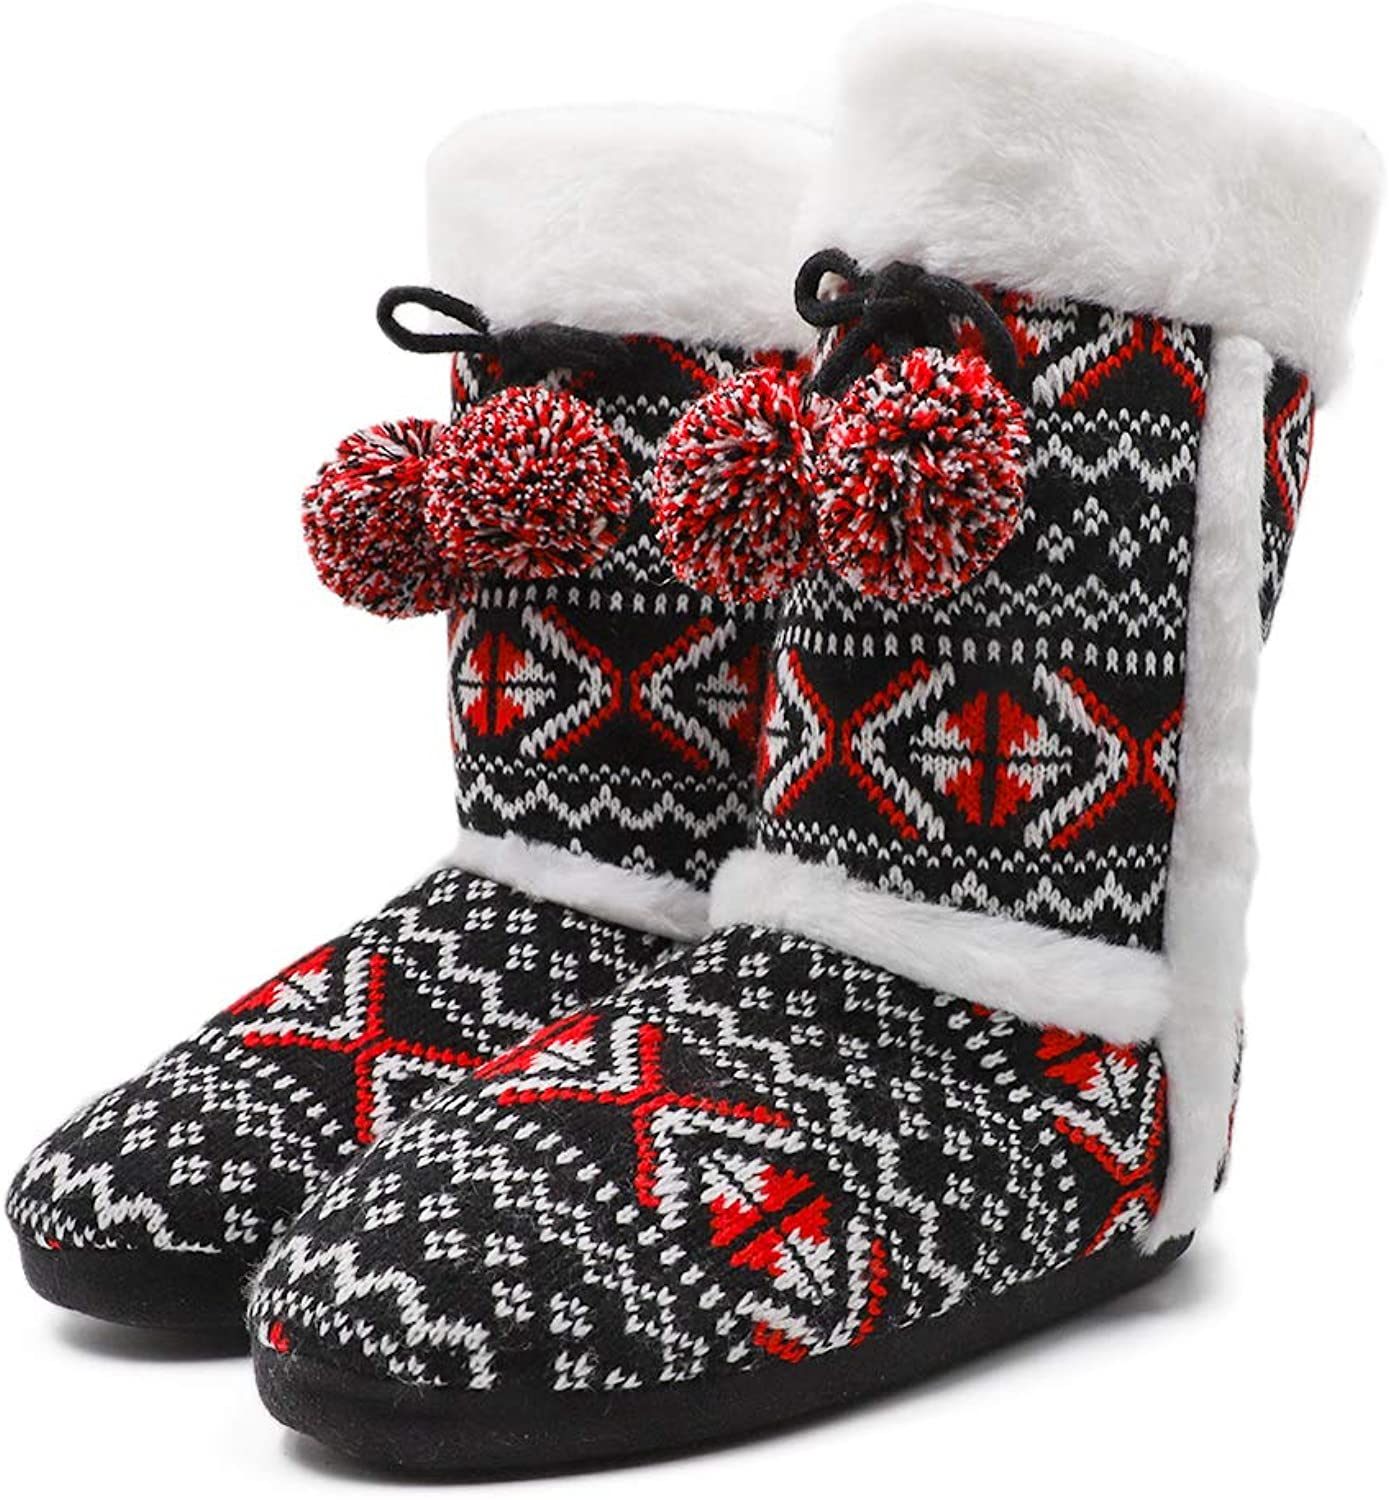 Women Cozy Plush Fleece Knit Bootie Slippers Winter Indoor Outdoor House shoes and Pom Poms